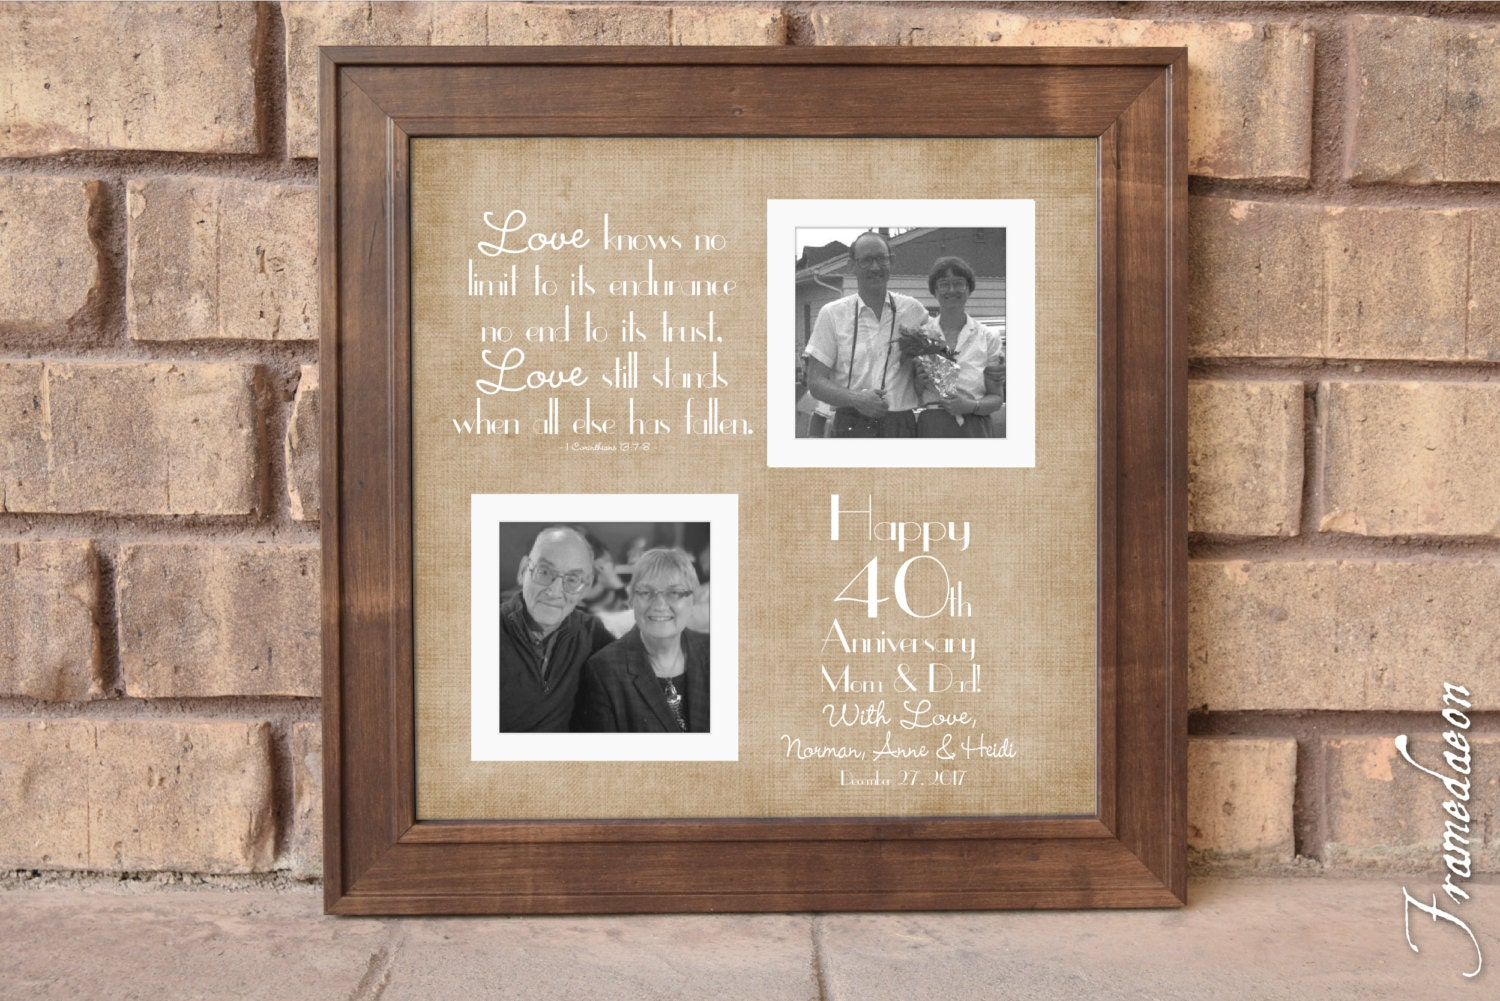 What Is The Traditional Gift For A 40th Wedding Anniversary: 40th Wedding Anniversary Gift Anniversary Gift For Mom Dad